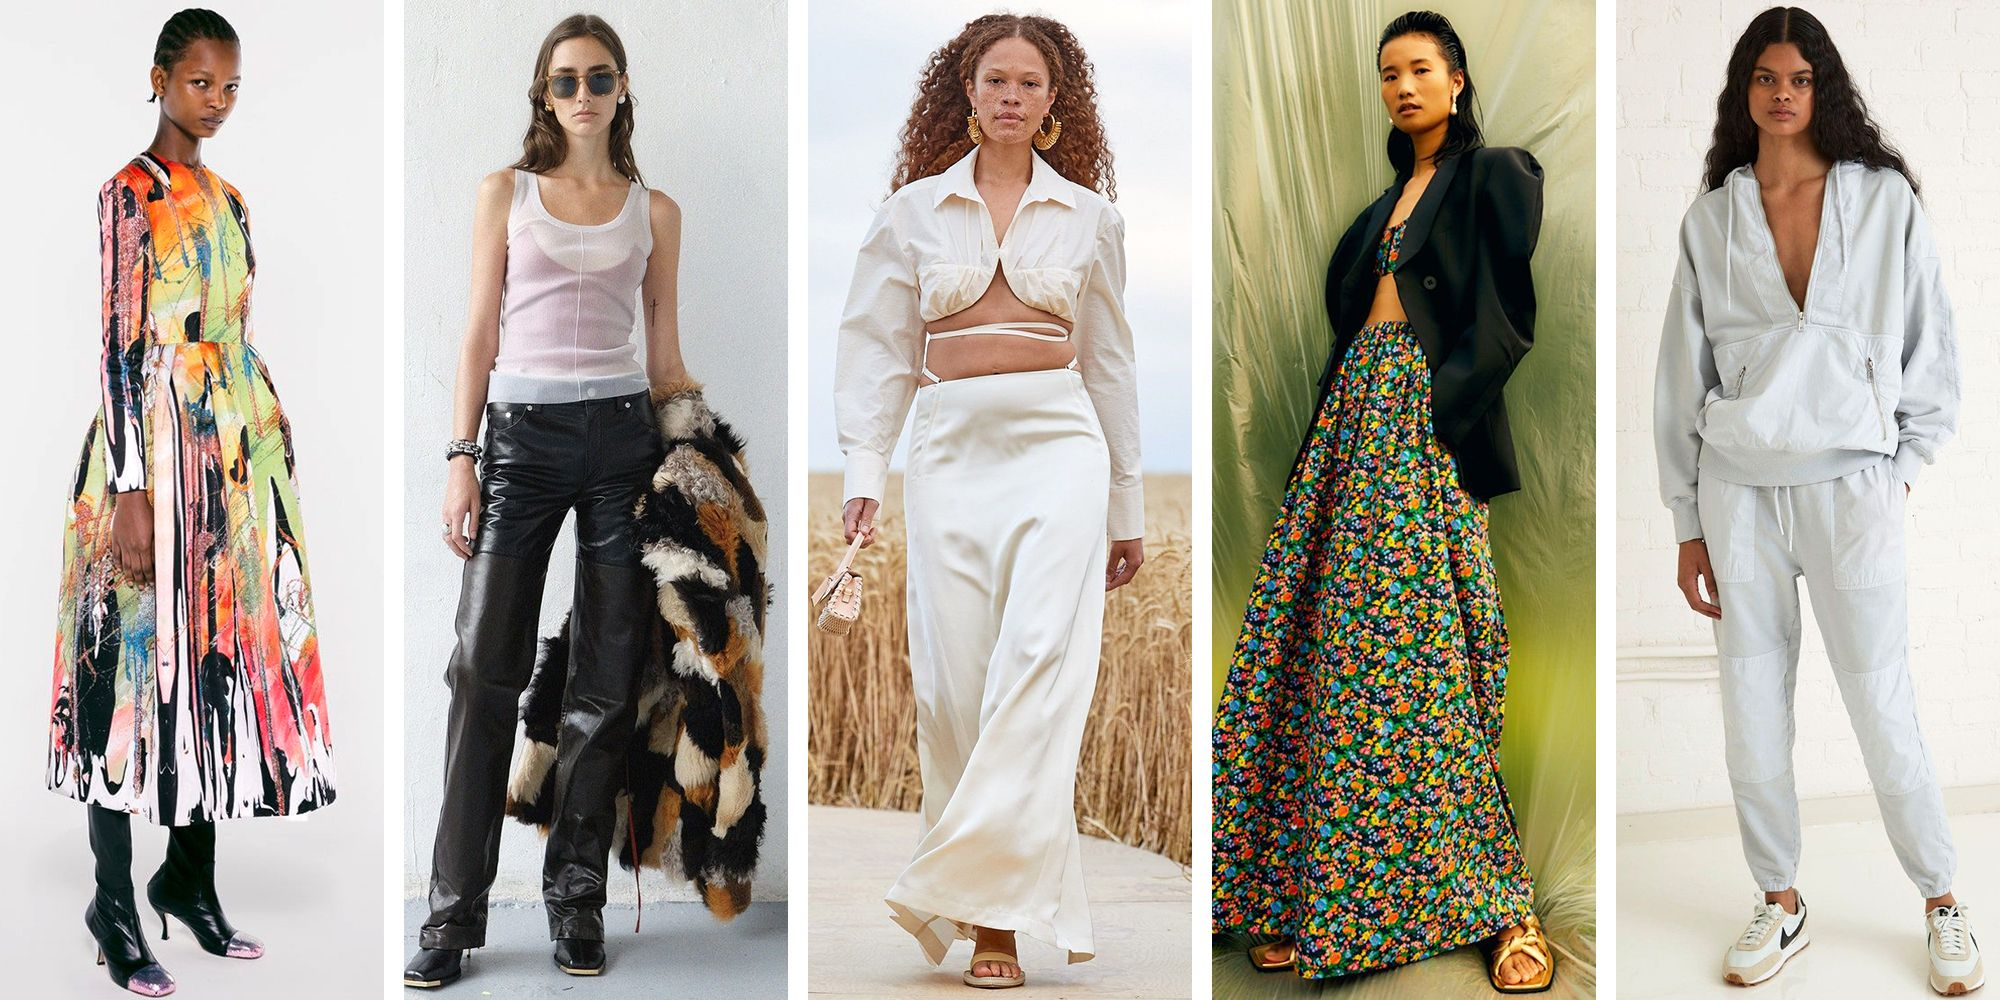 The Biggest Trends of Spring 5 So Far